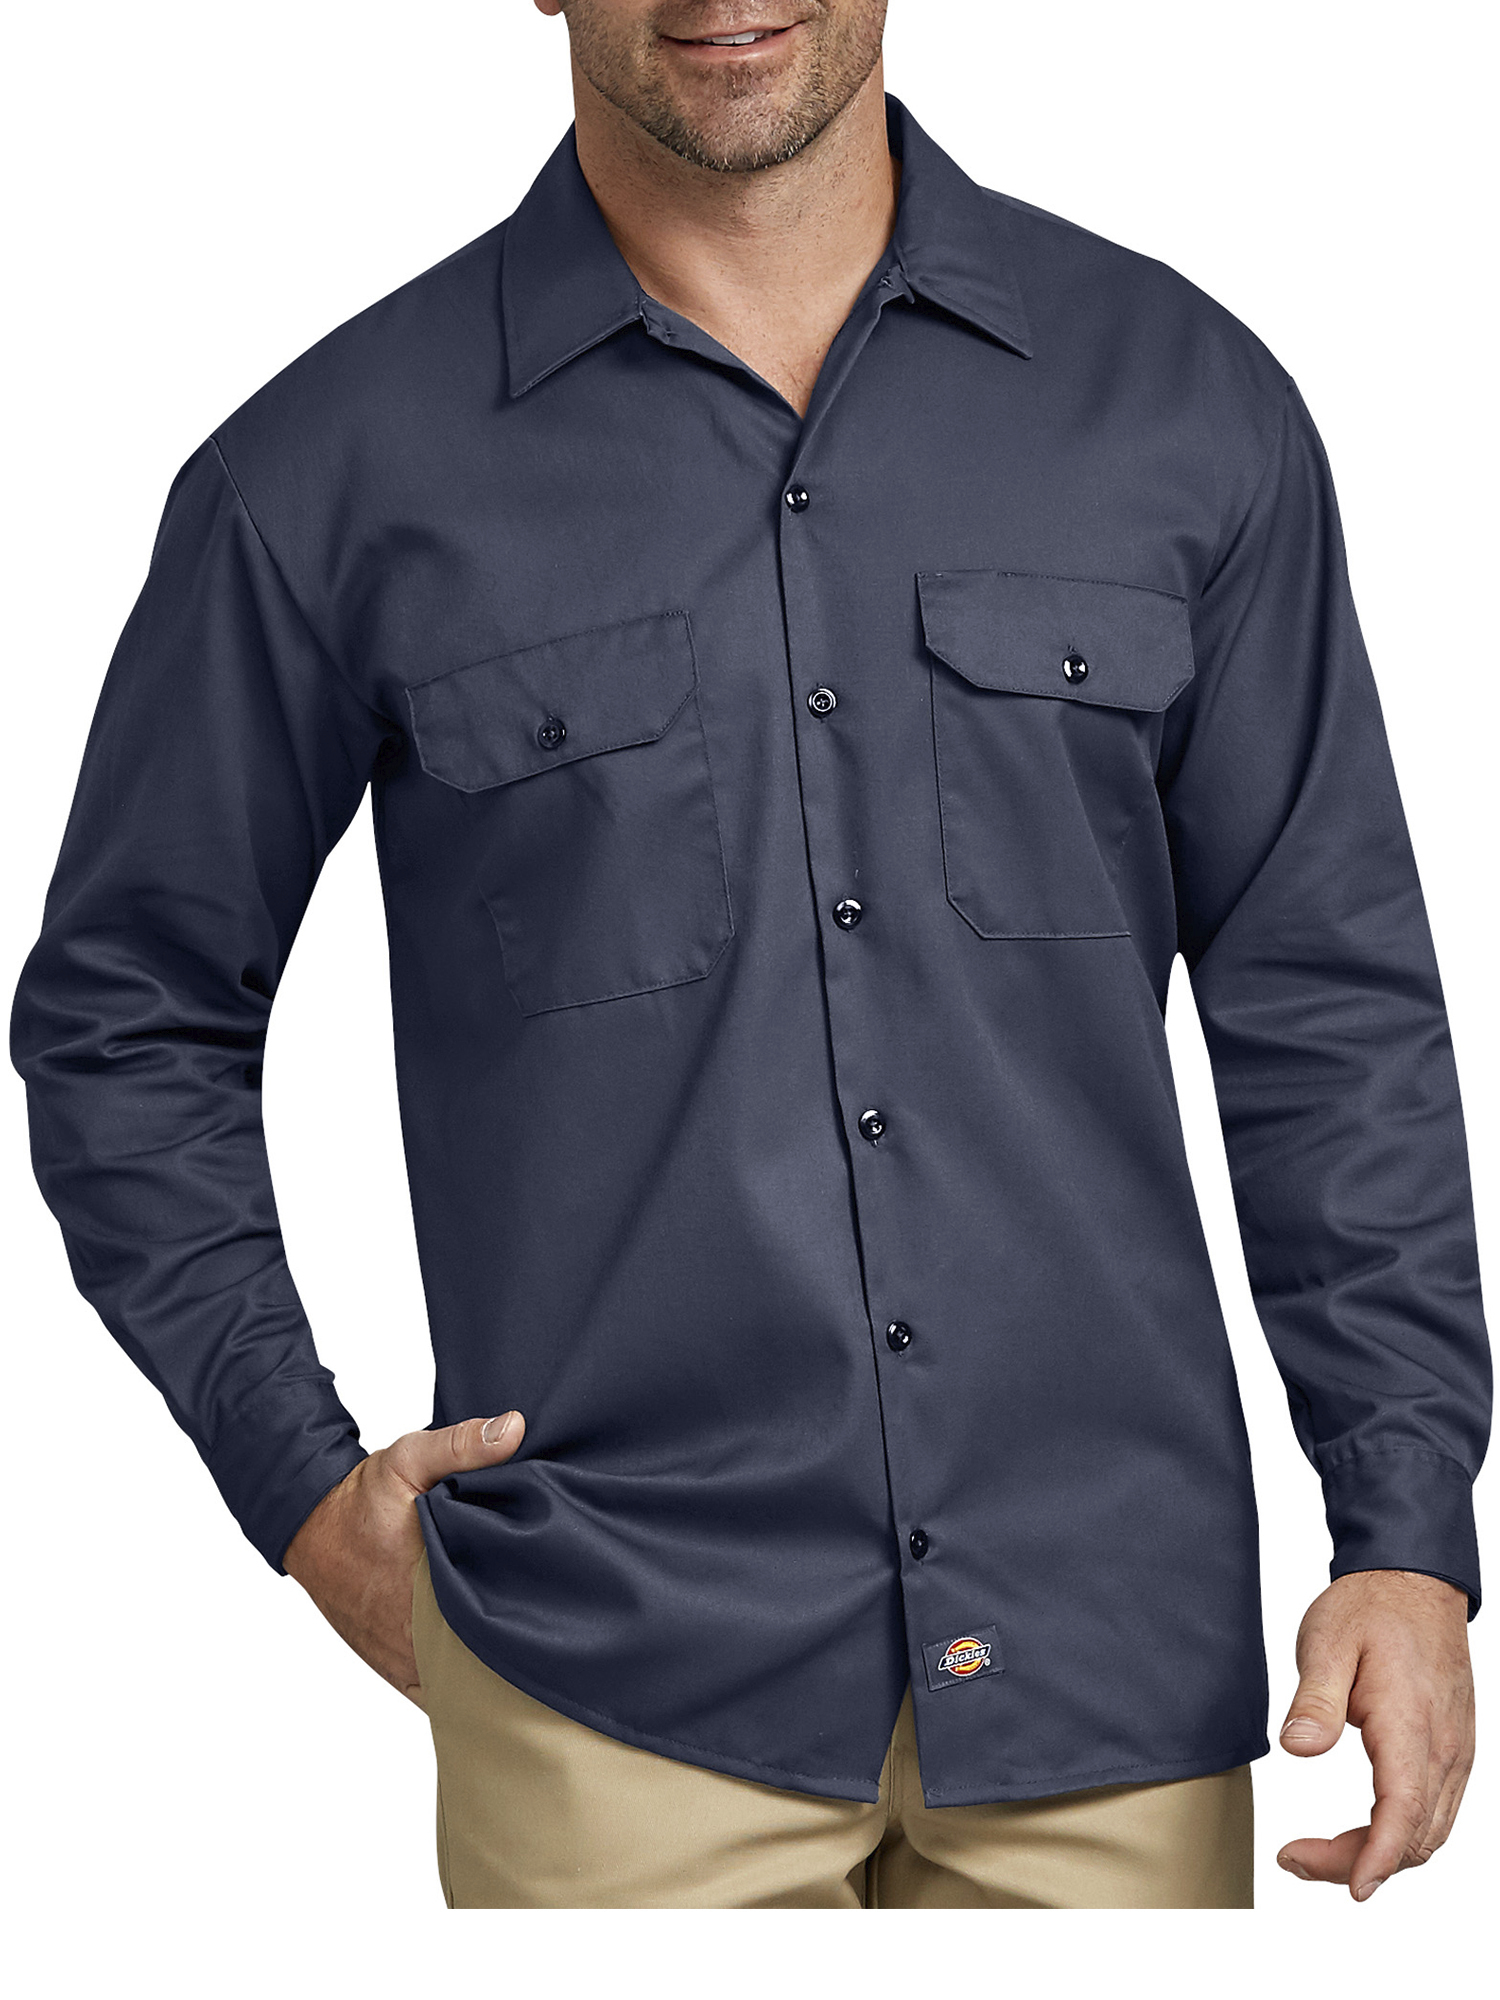 Big Men's Long Sleeve Twill Work Shirt